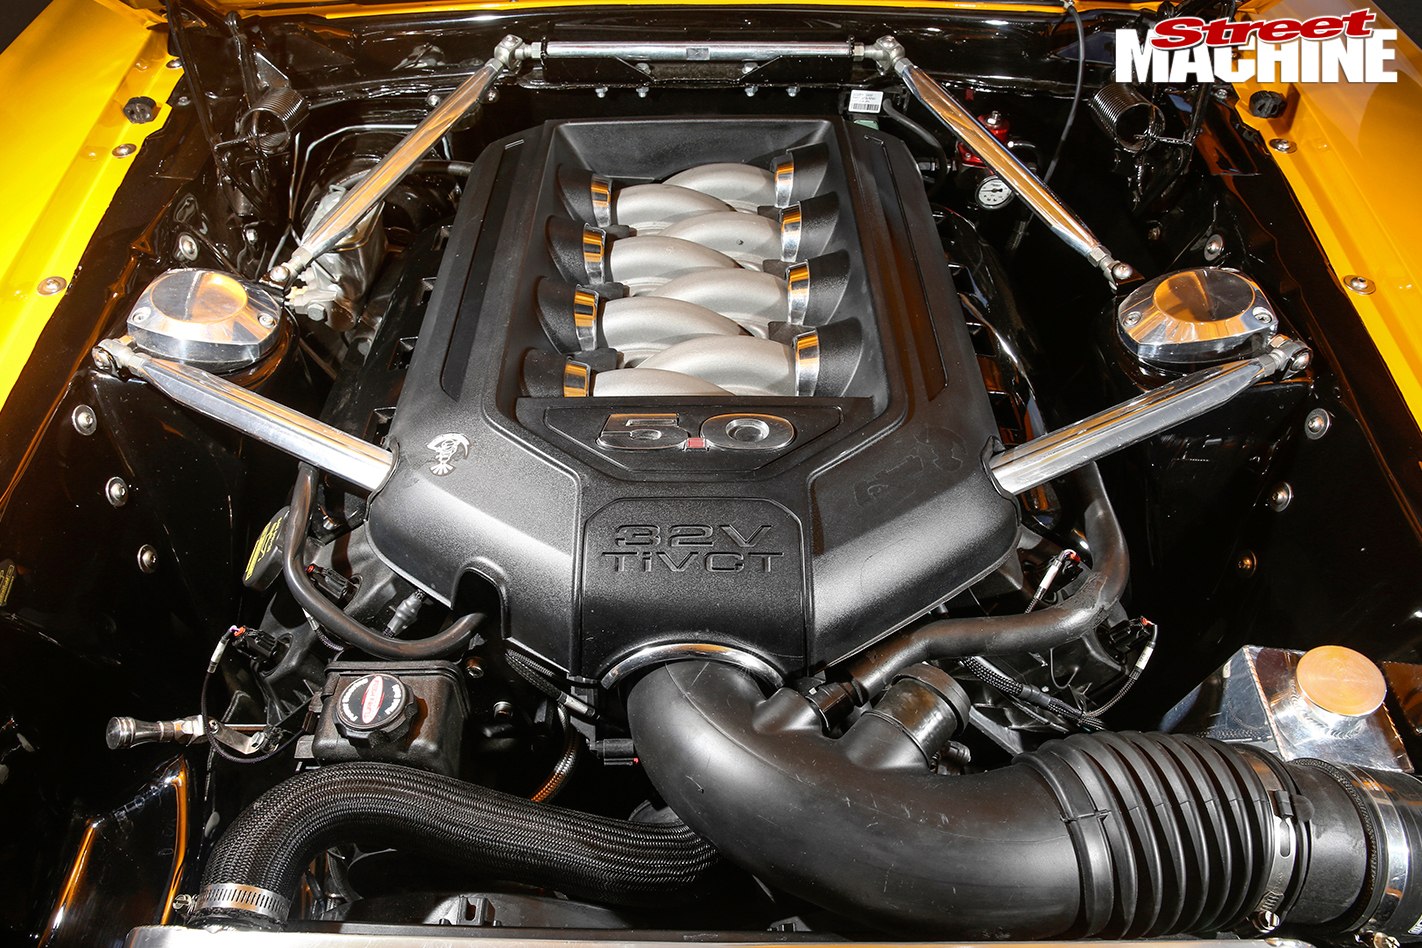 Ford -Mustang -BOSS-engine -bay